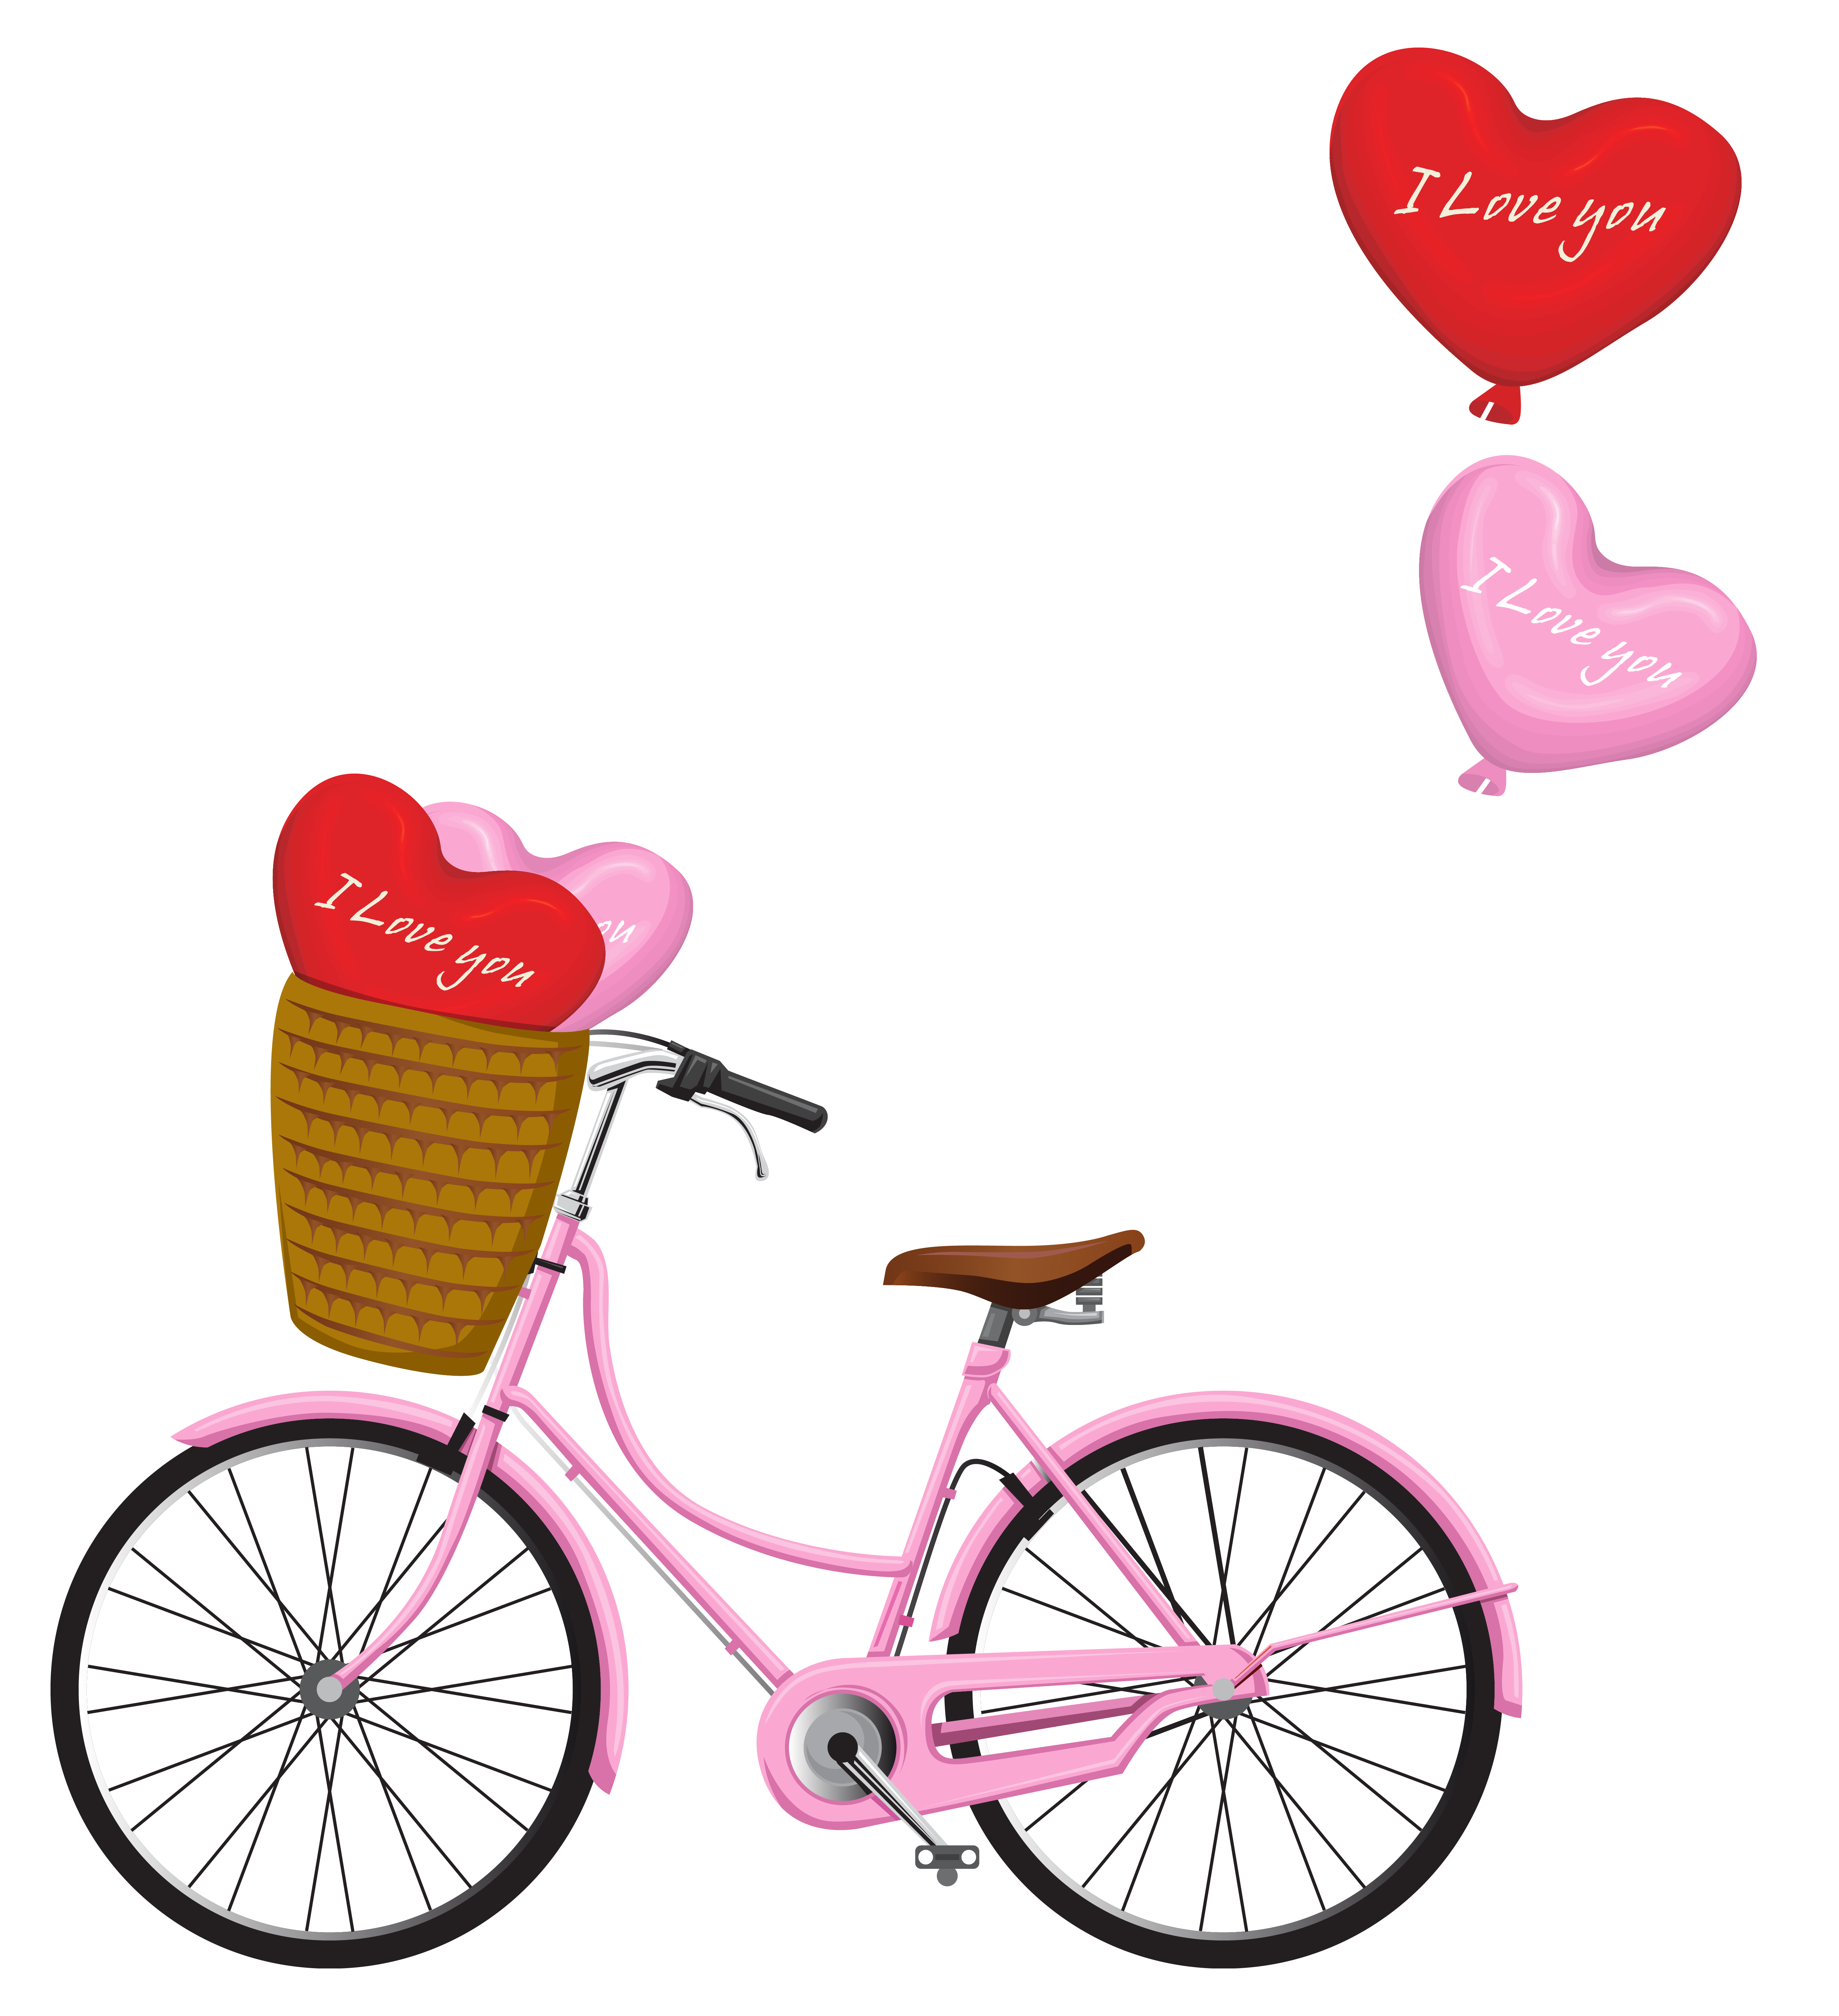 Bicycle with flower basket clipart black and white stock Valentine's Day Bicycle PNG Clipart Image | Gallery Yopriceville ... black and white stock